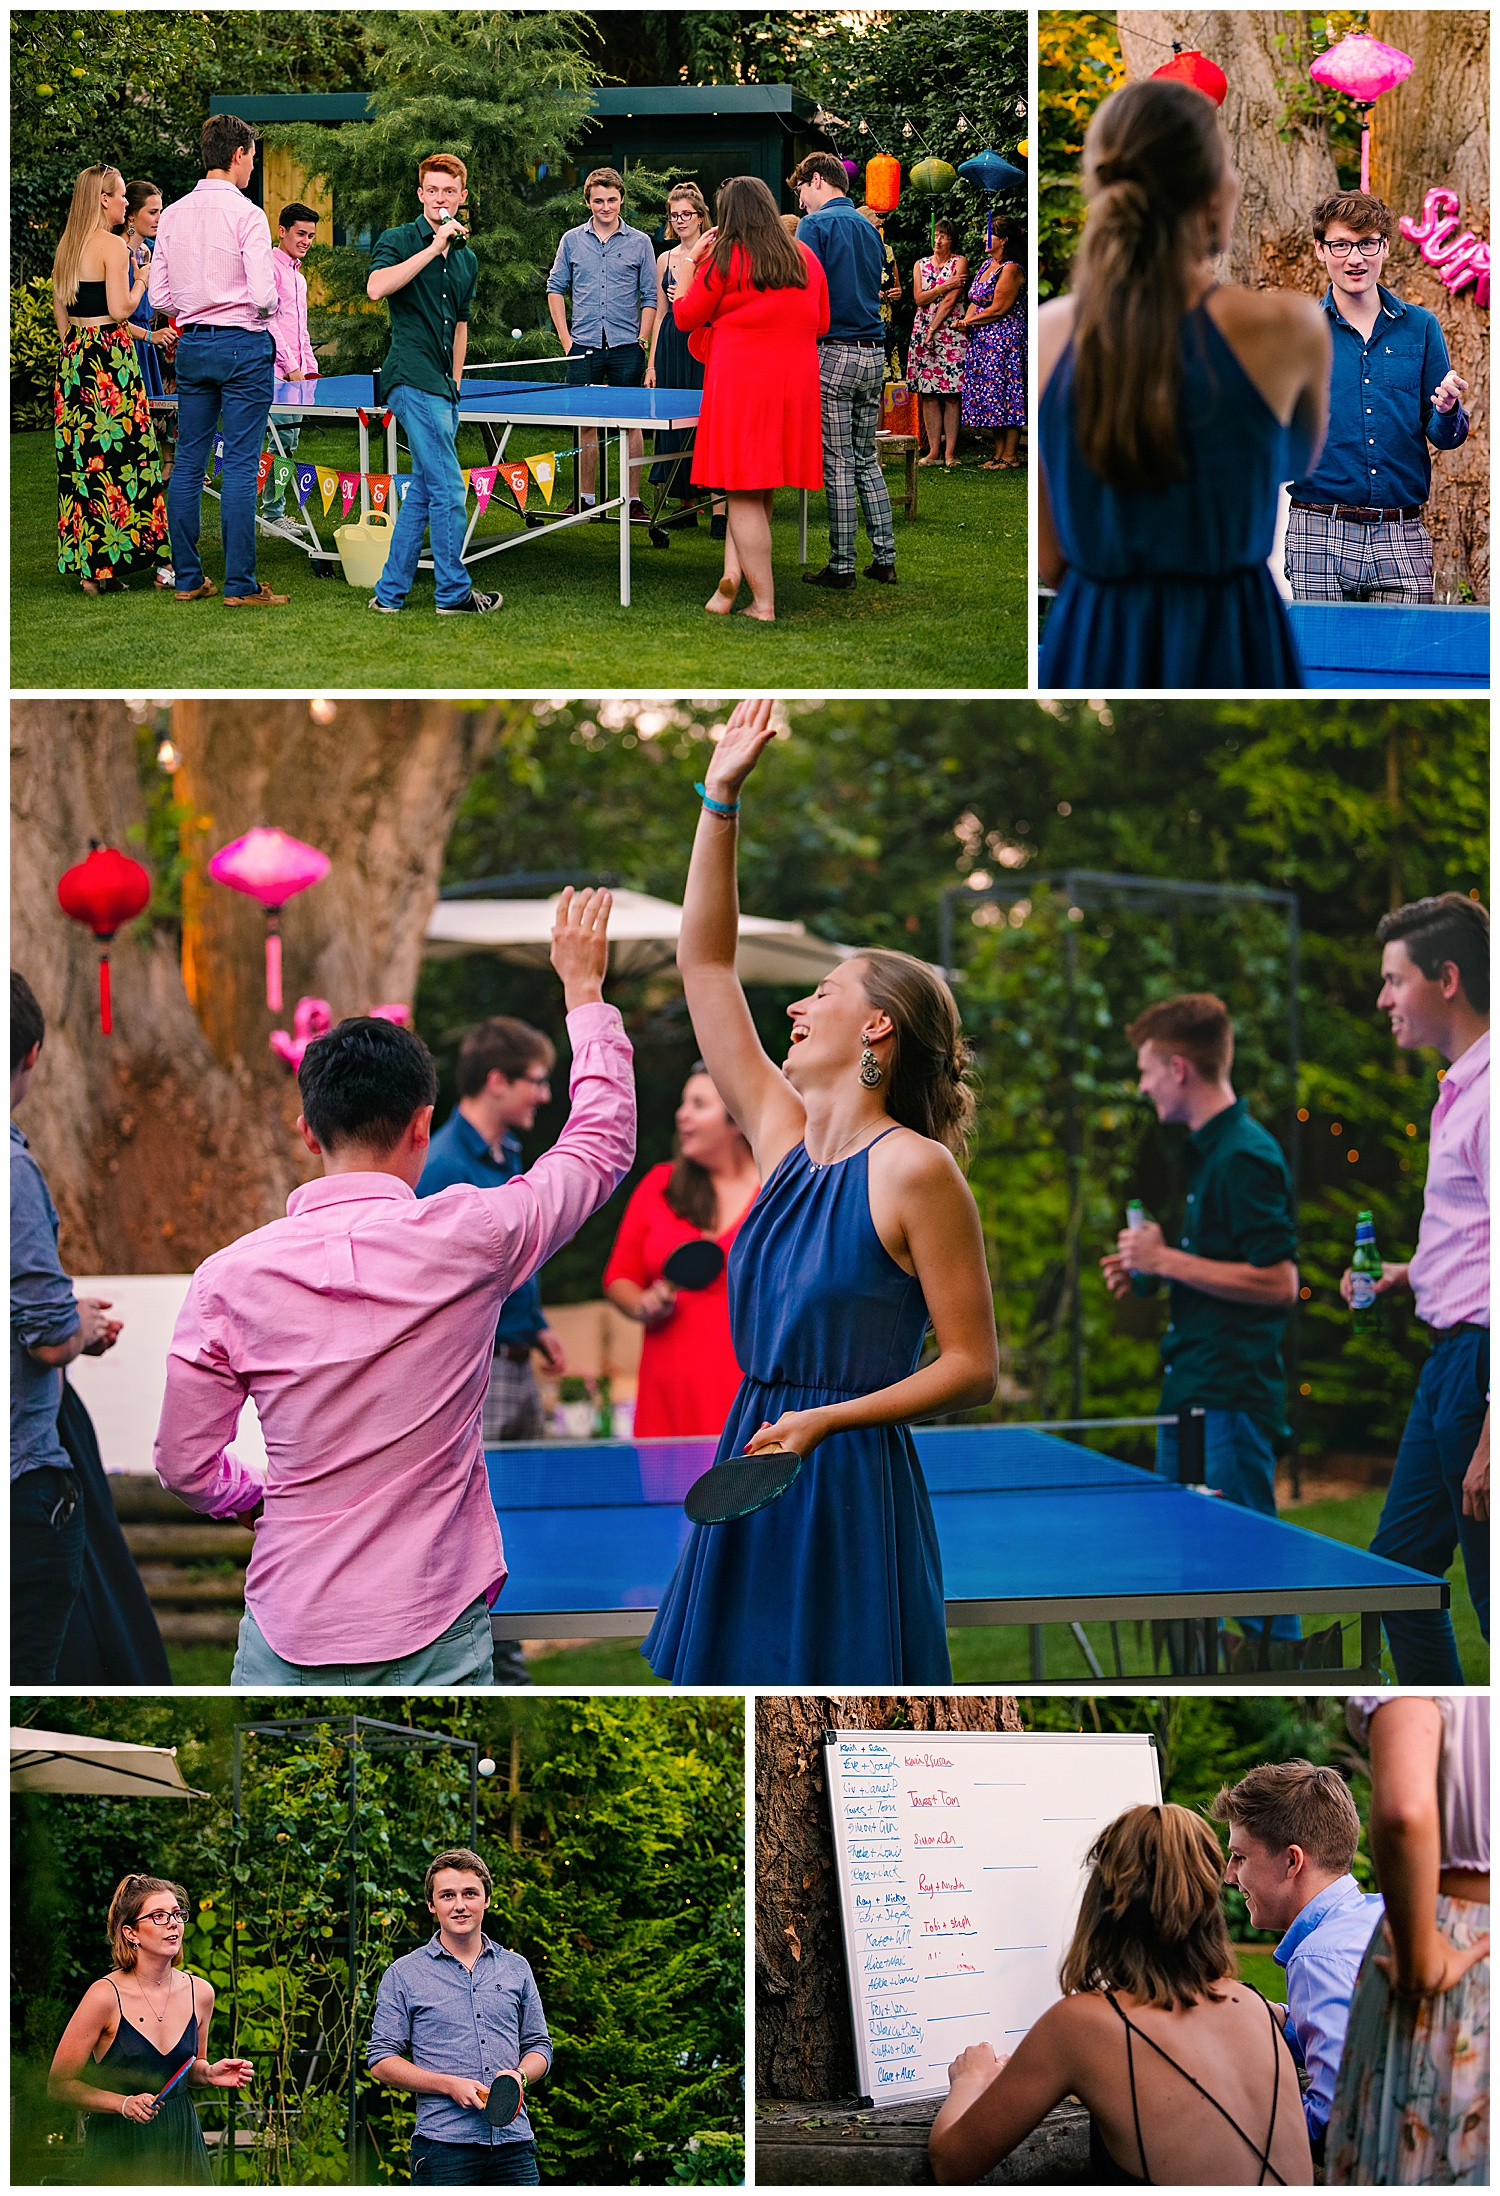 Birthday Party Photographer captures an array of images of 21 year olds playing table tennis outside at a party